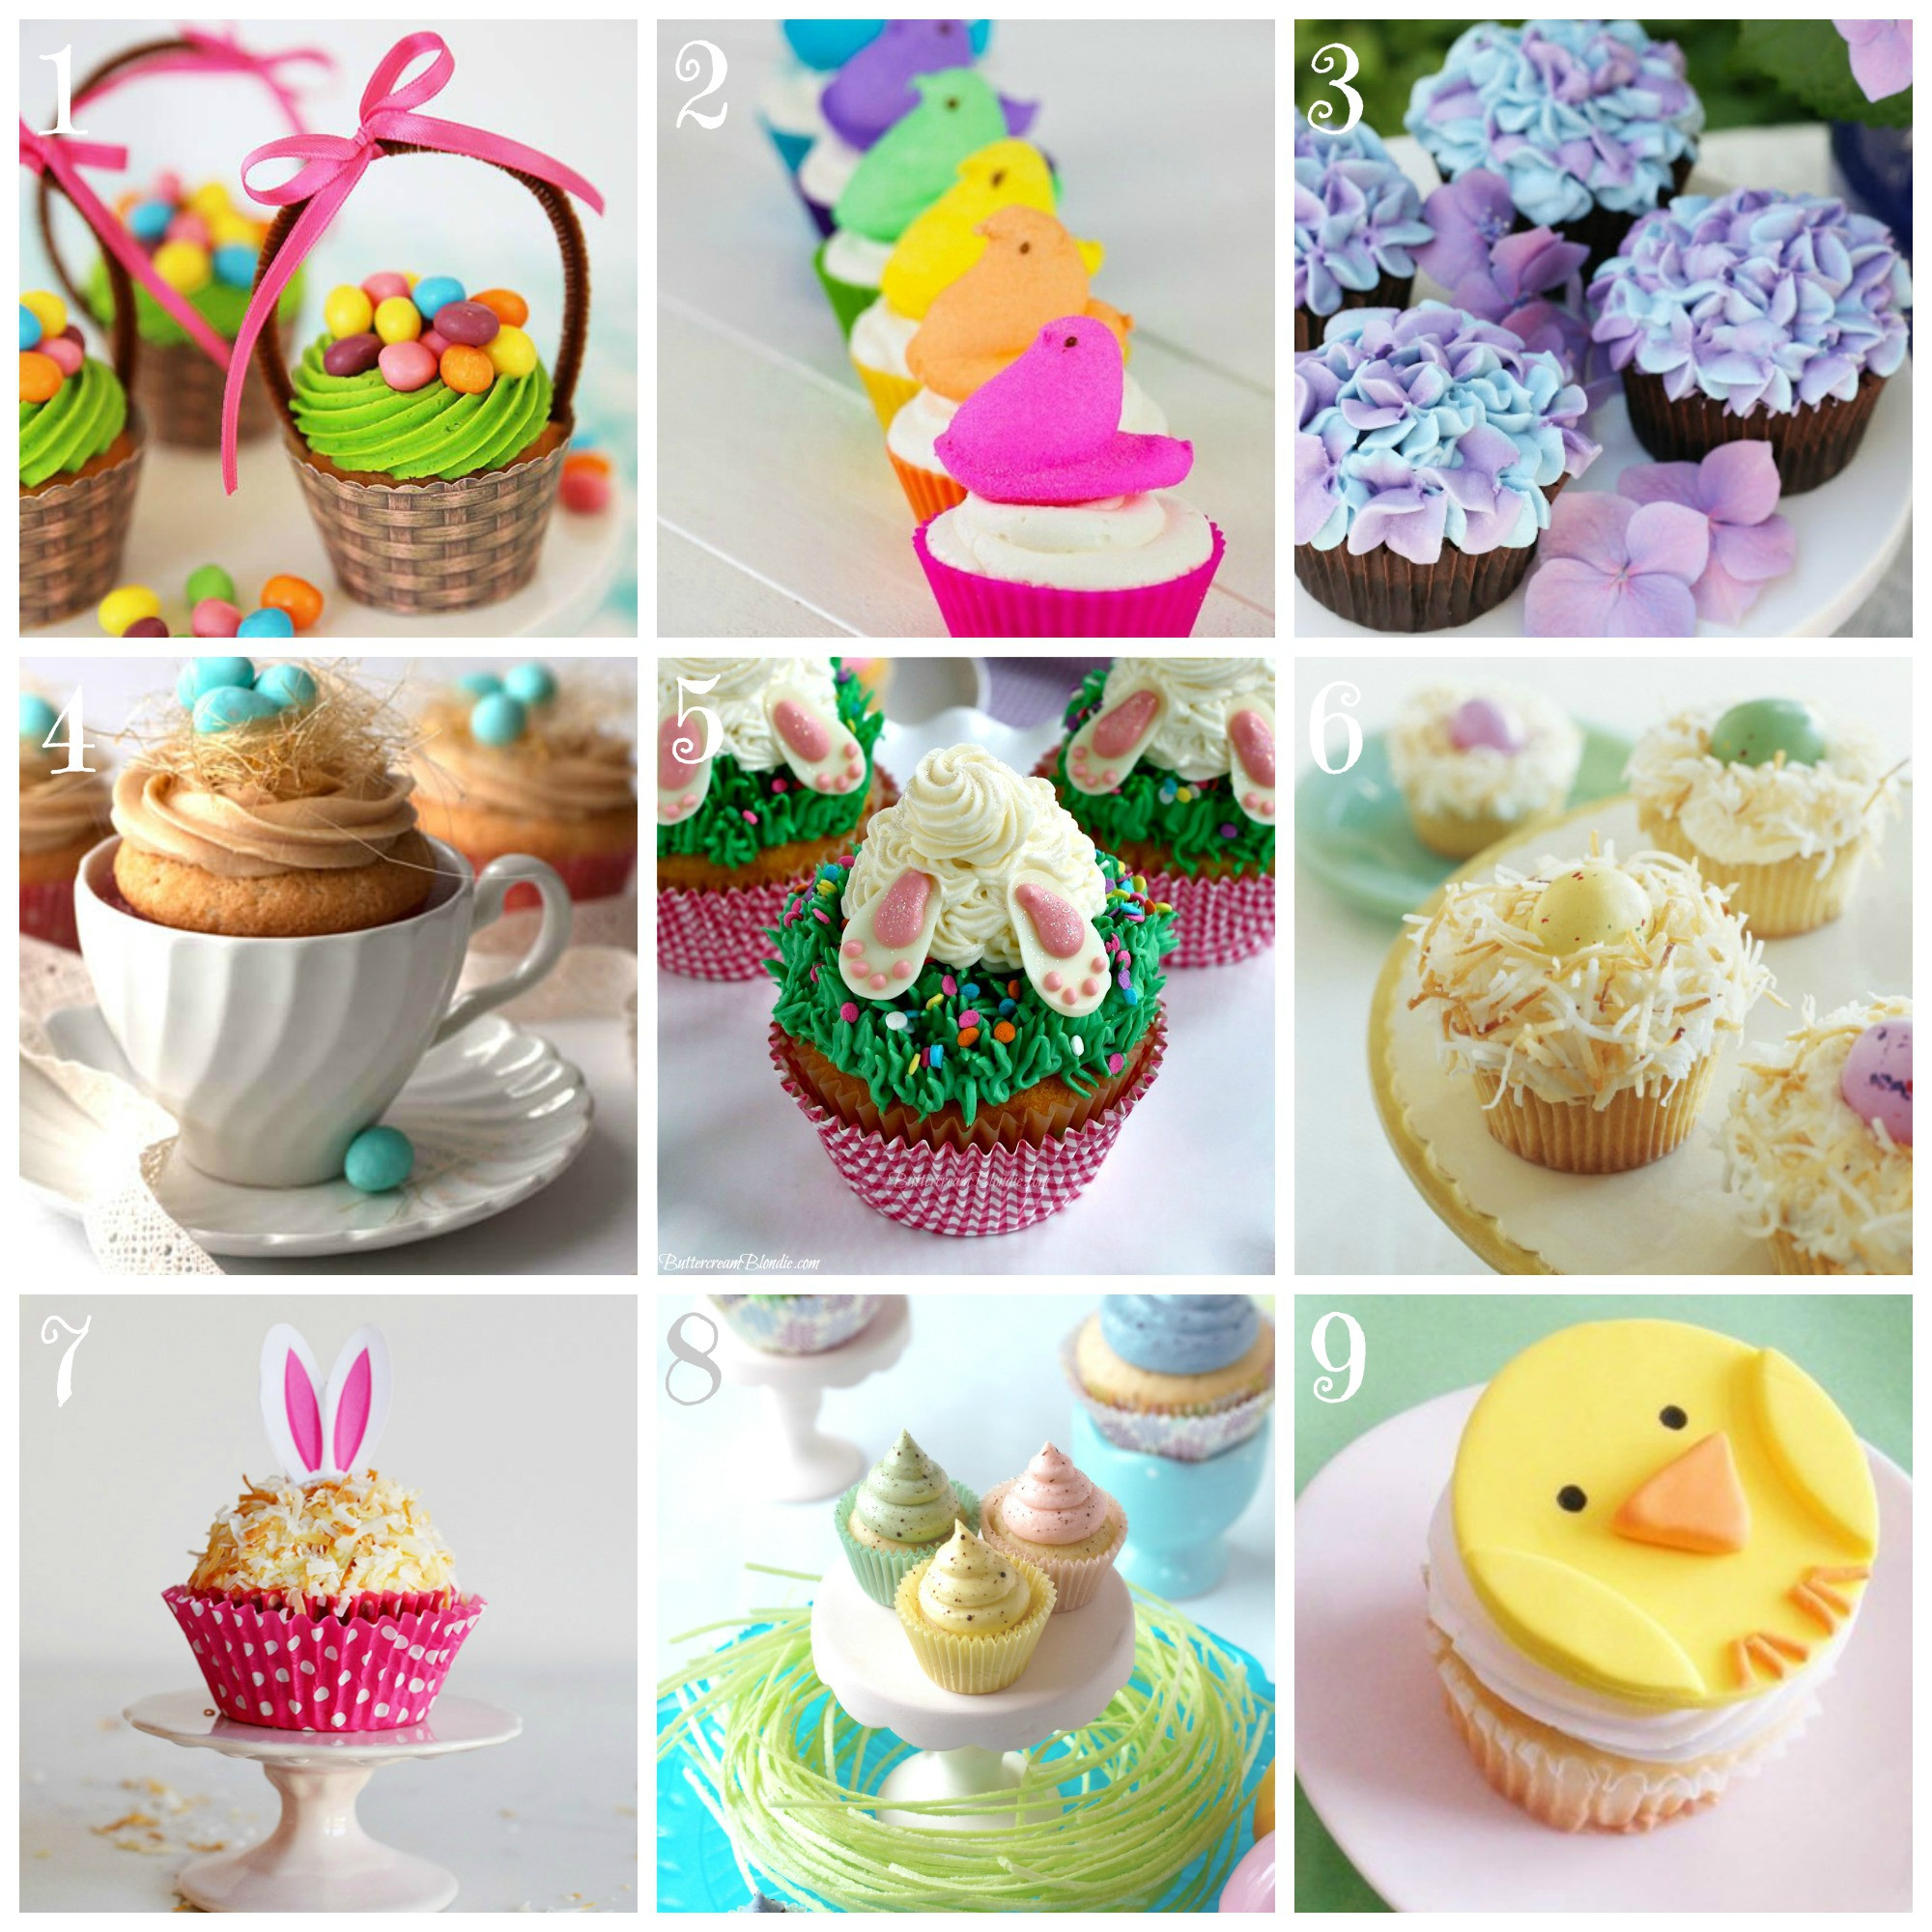 Easter Cupcakes Images  Top 9 Easter Cupcake Recipes